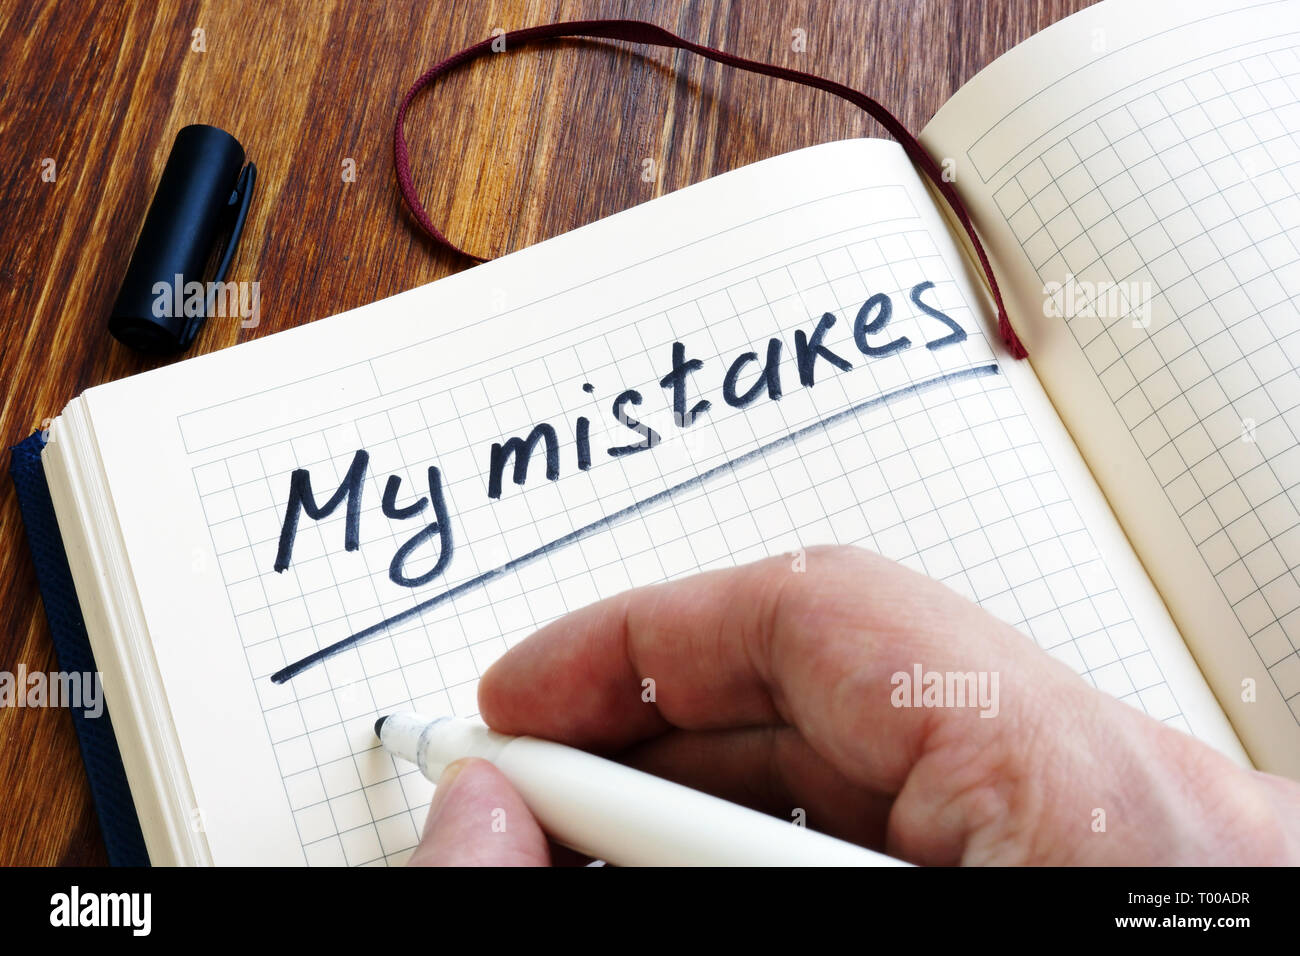 Man is writing My mistakes in a note. Inner critic concept. - Stock Image